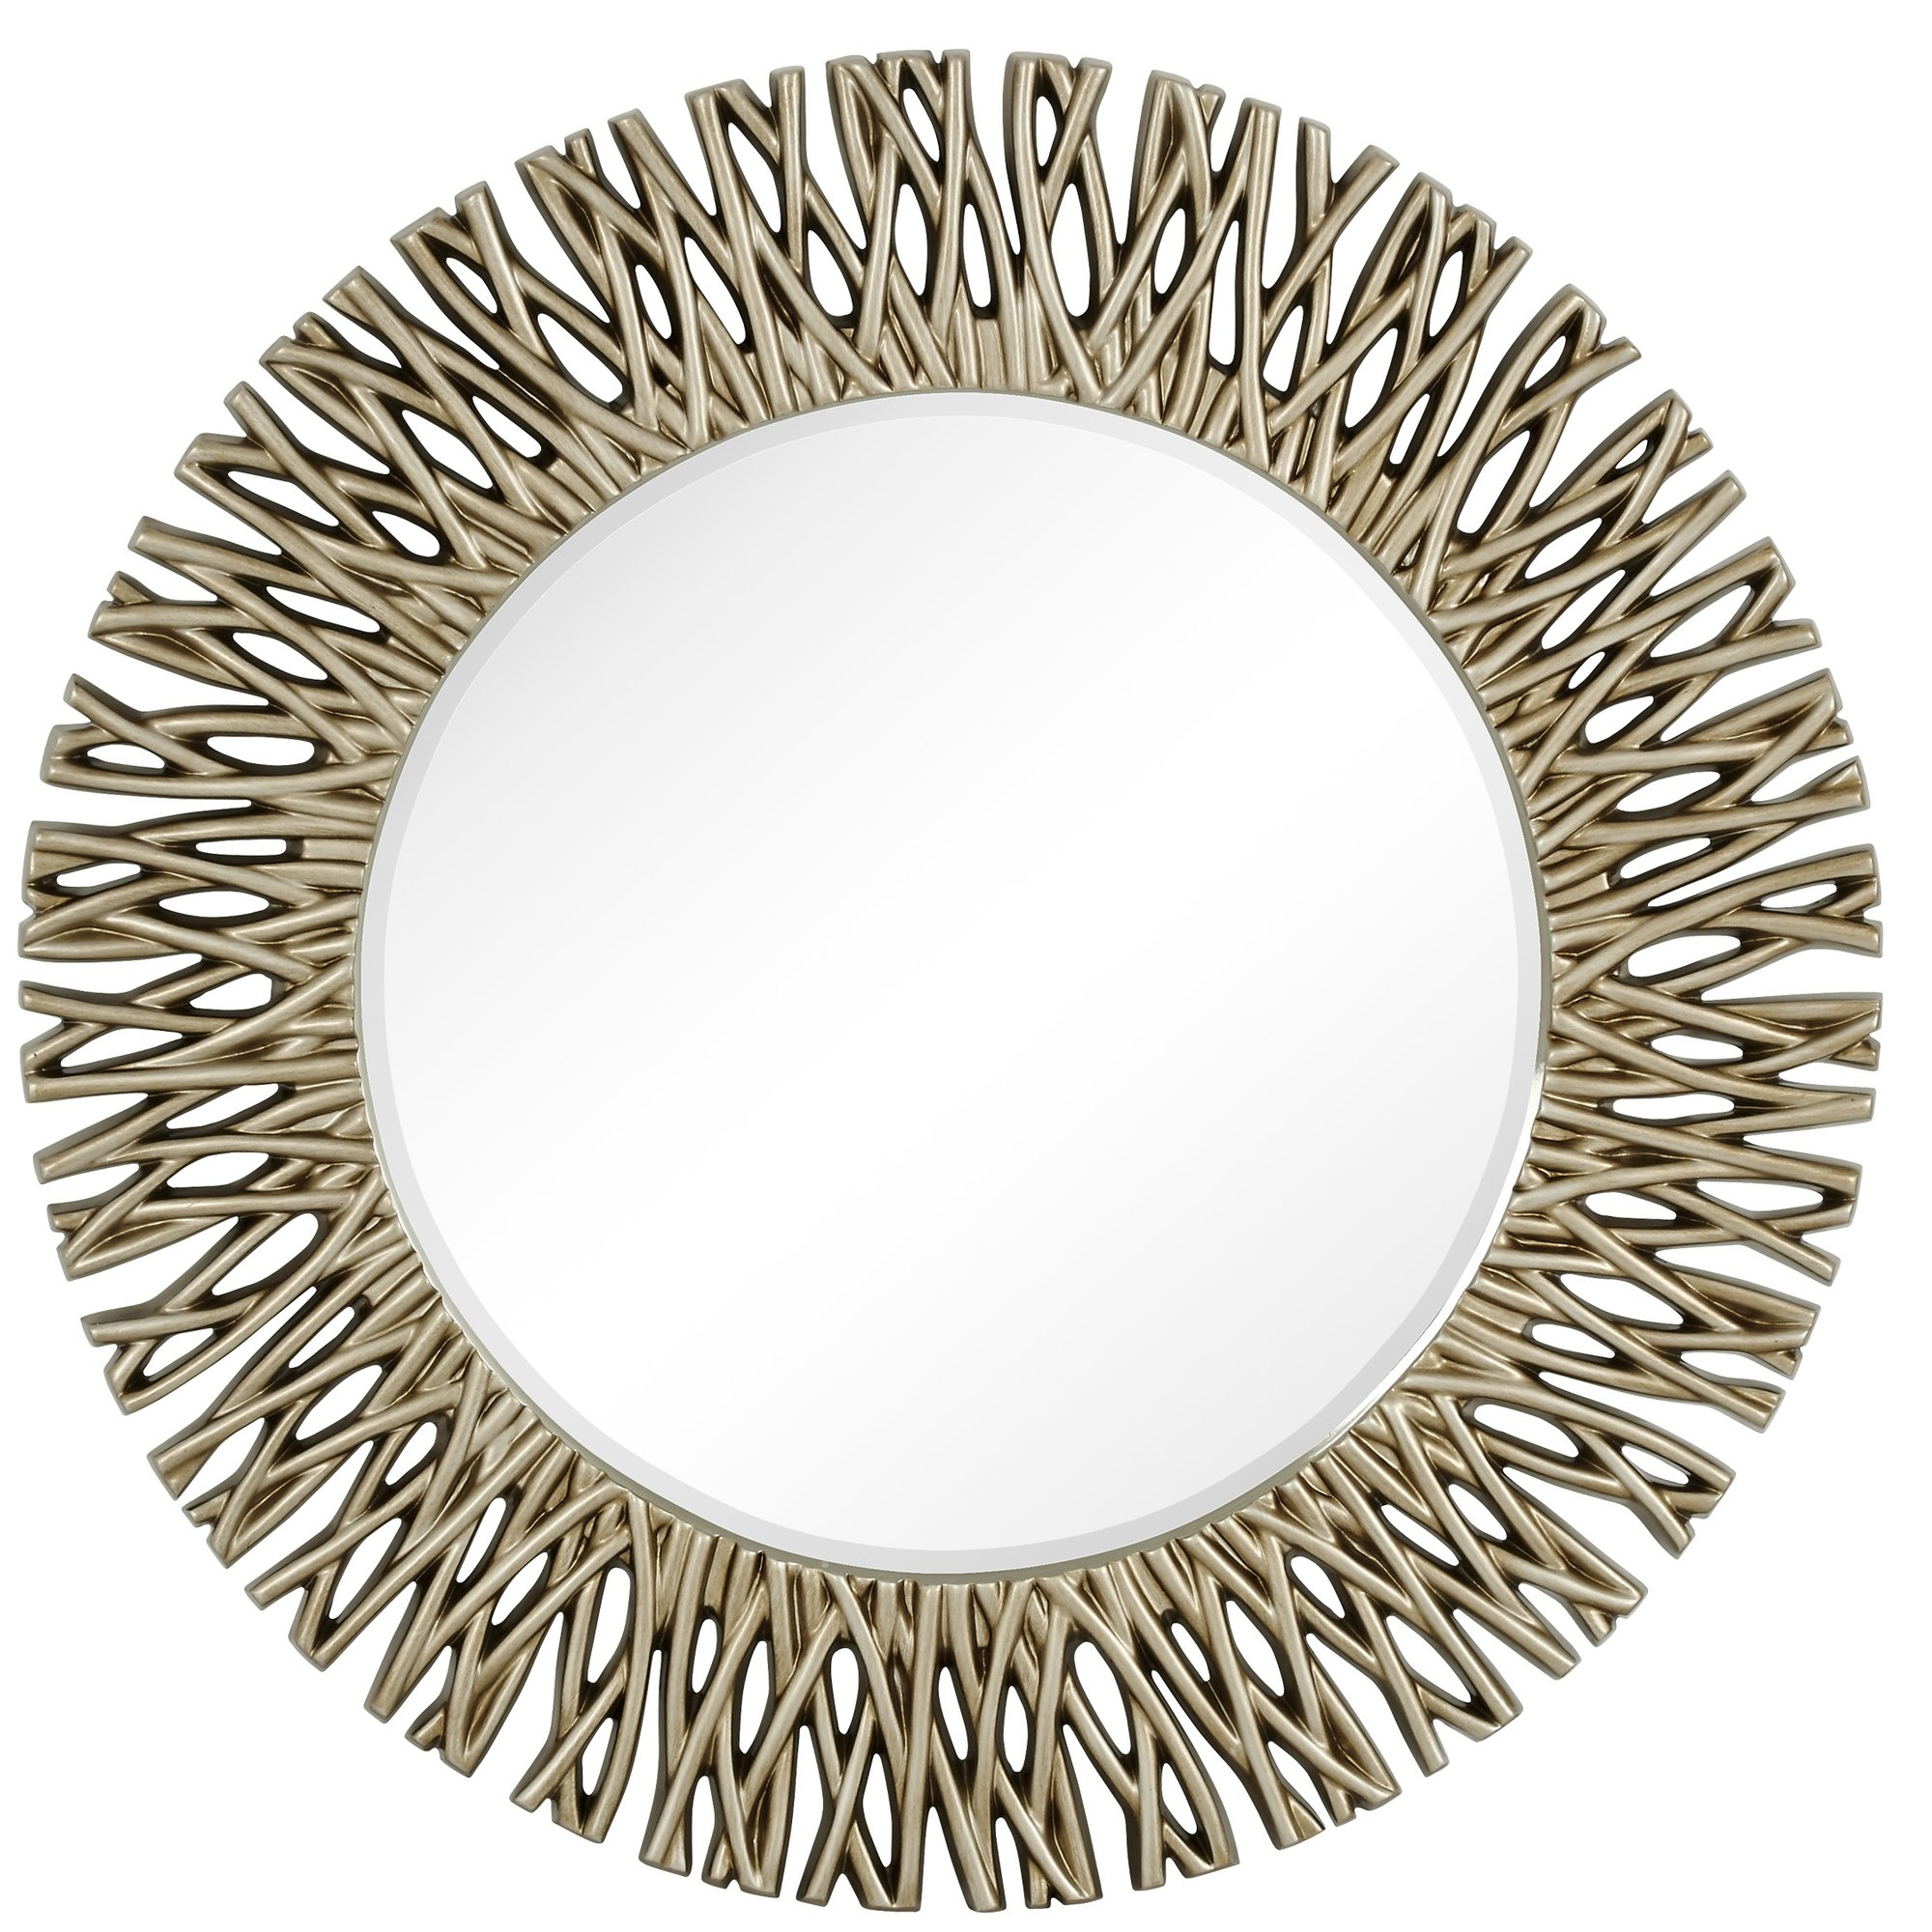 Majestic Mirror Large Round Antique Silver Decorative Beveled Regarding Large Oval Wall Mirror (Image 12 of 14)